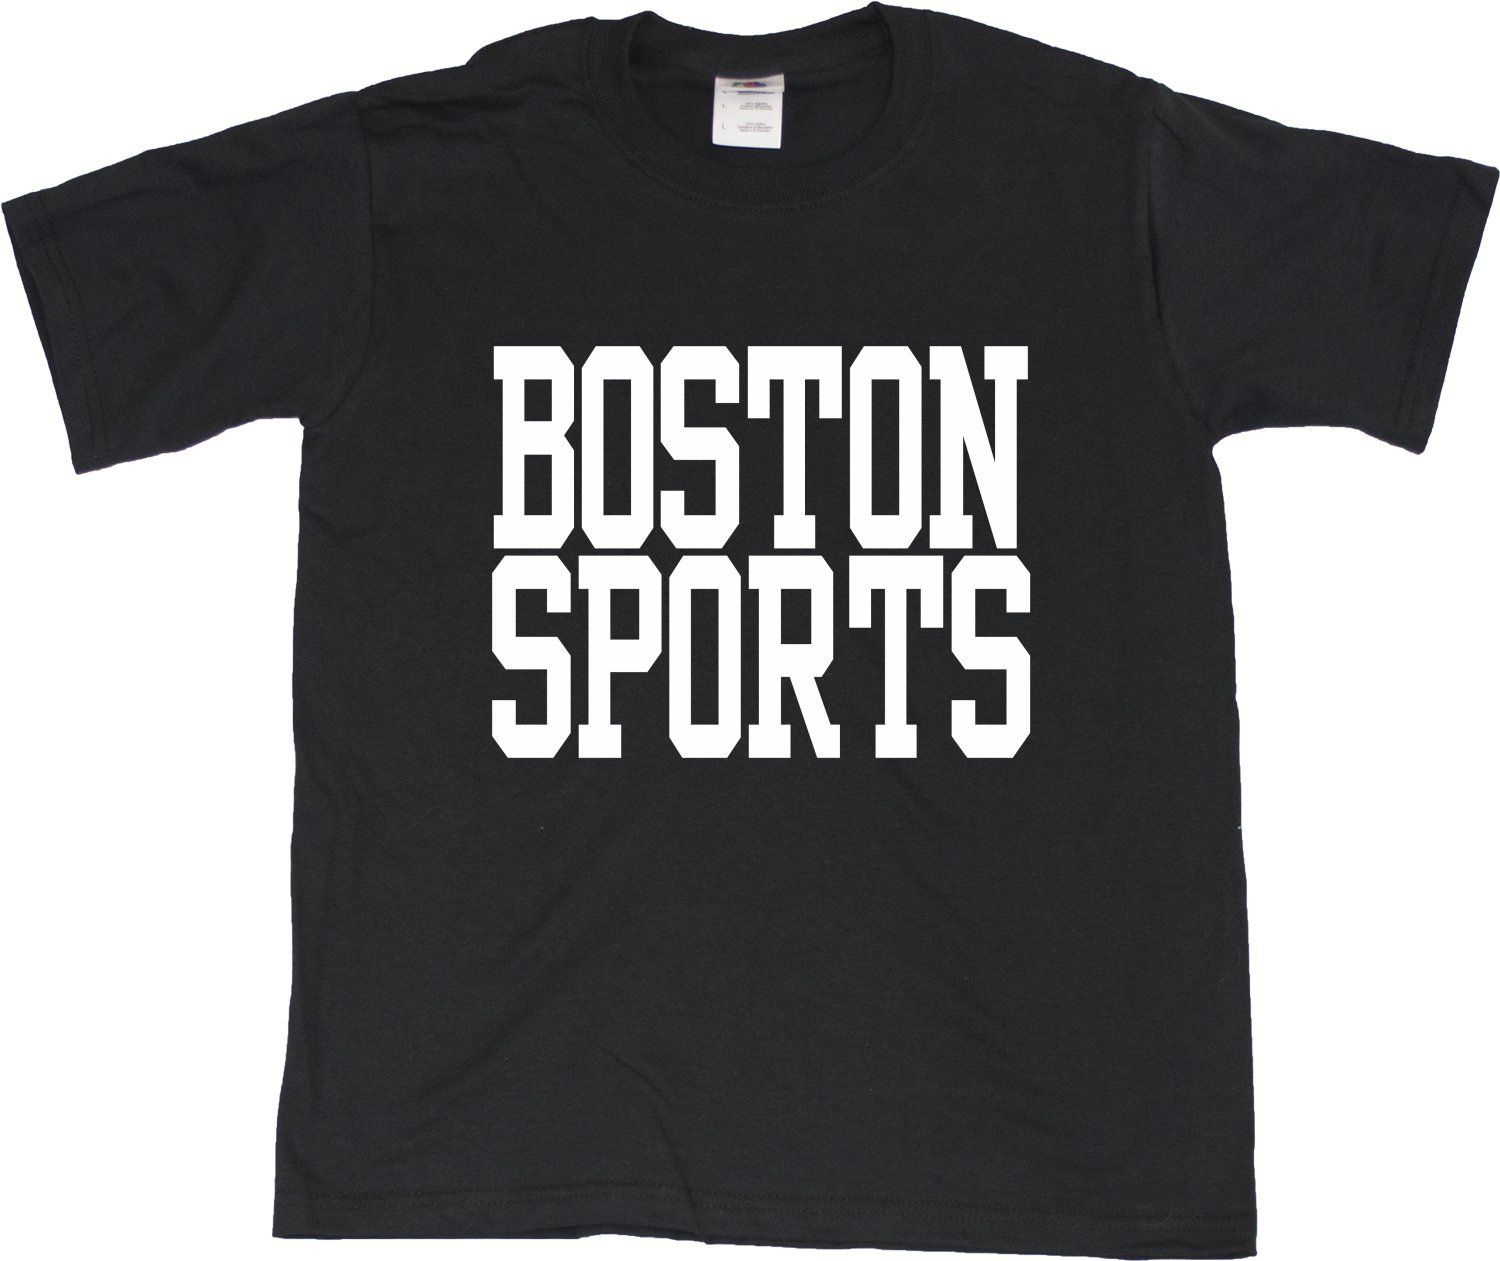 BOSTON SPORTS Youth T-shirt - Bruins, Red Sox, Patriots, Celtics Fan Tee 2T